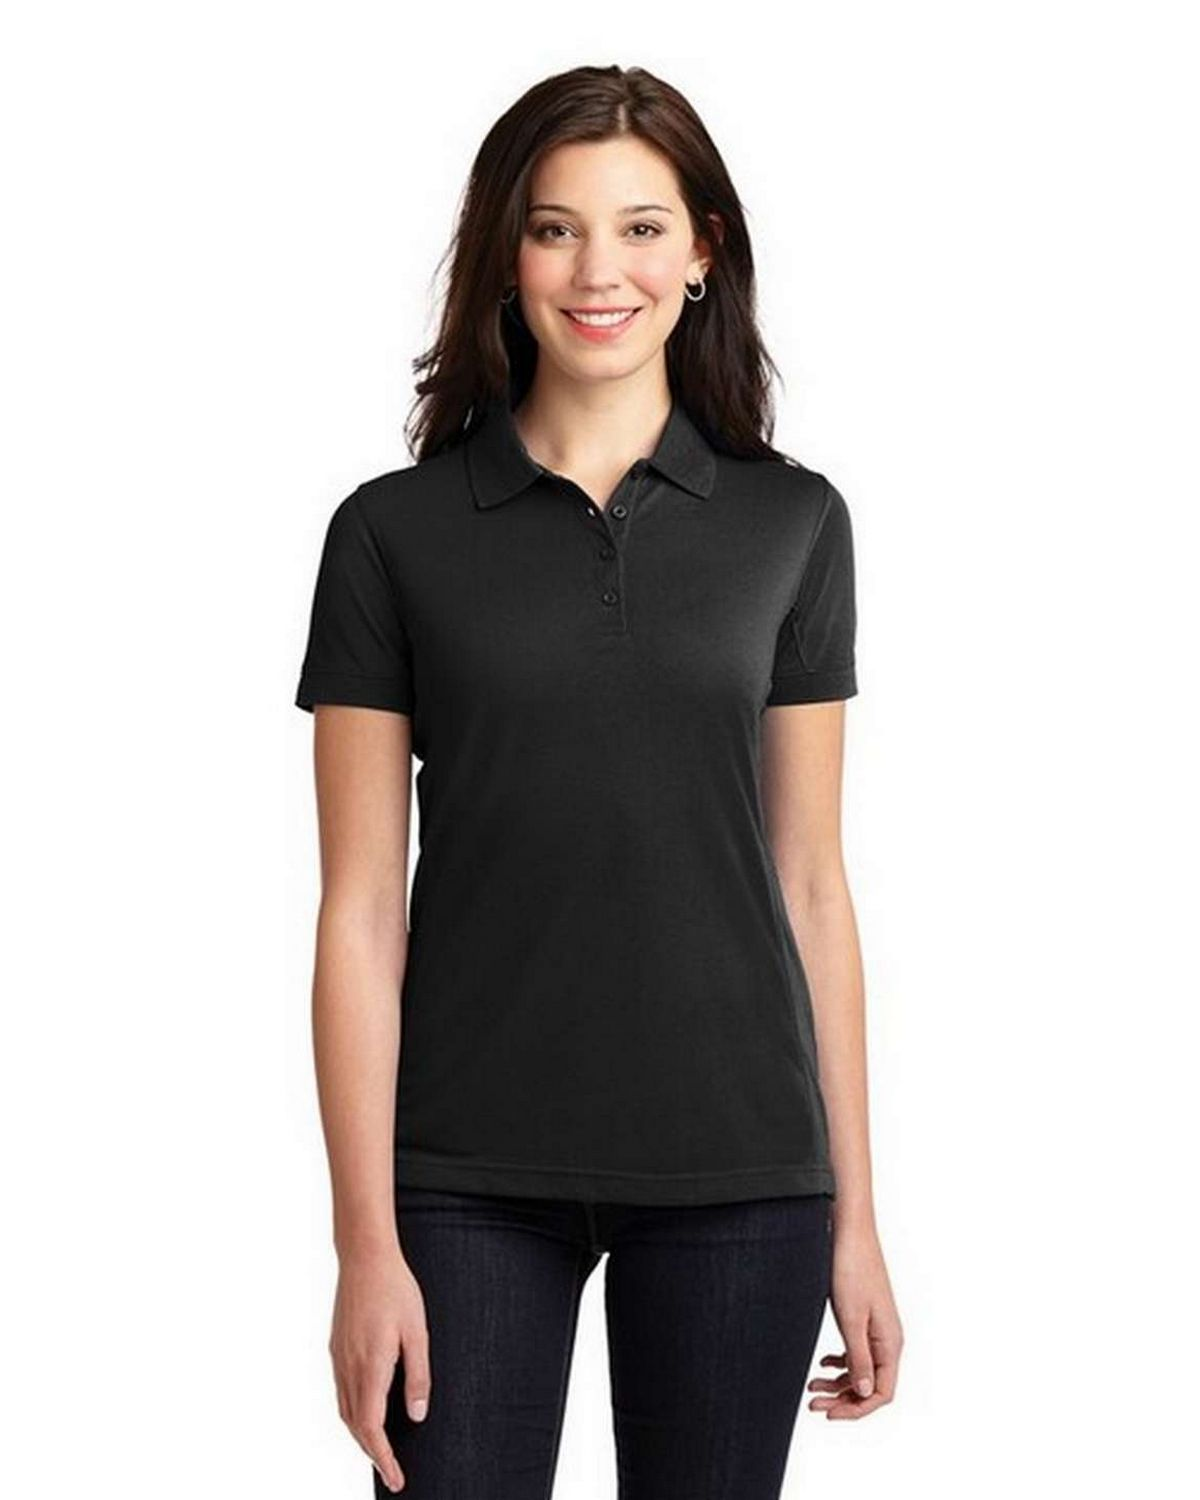 Port Authority L567 Ladies 5-in-1 Performance Pique Polo